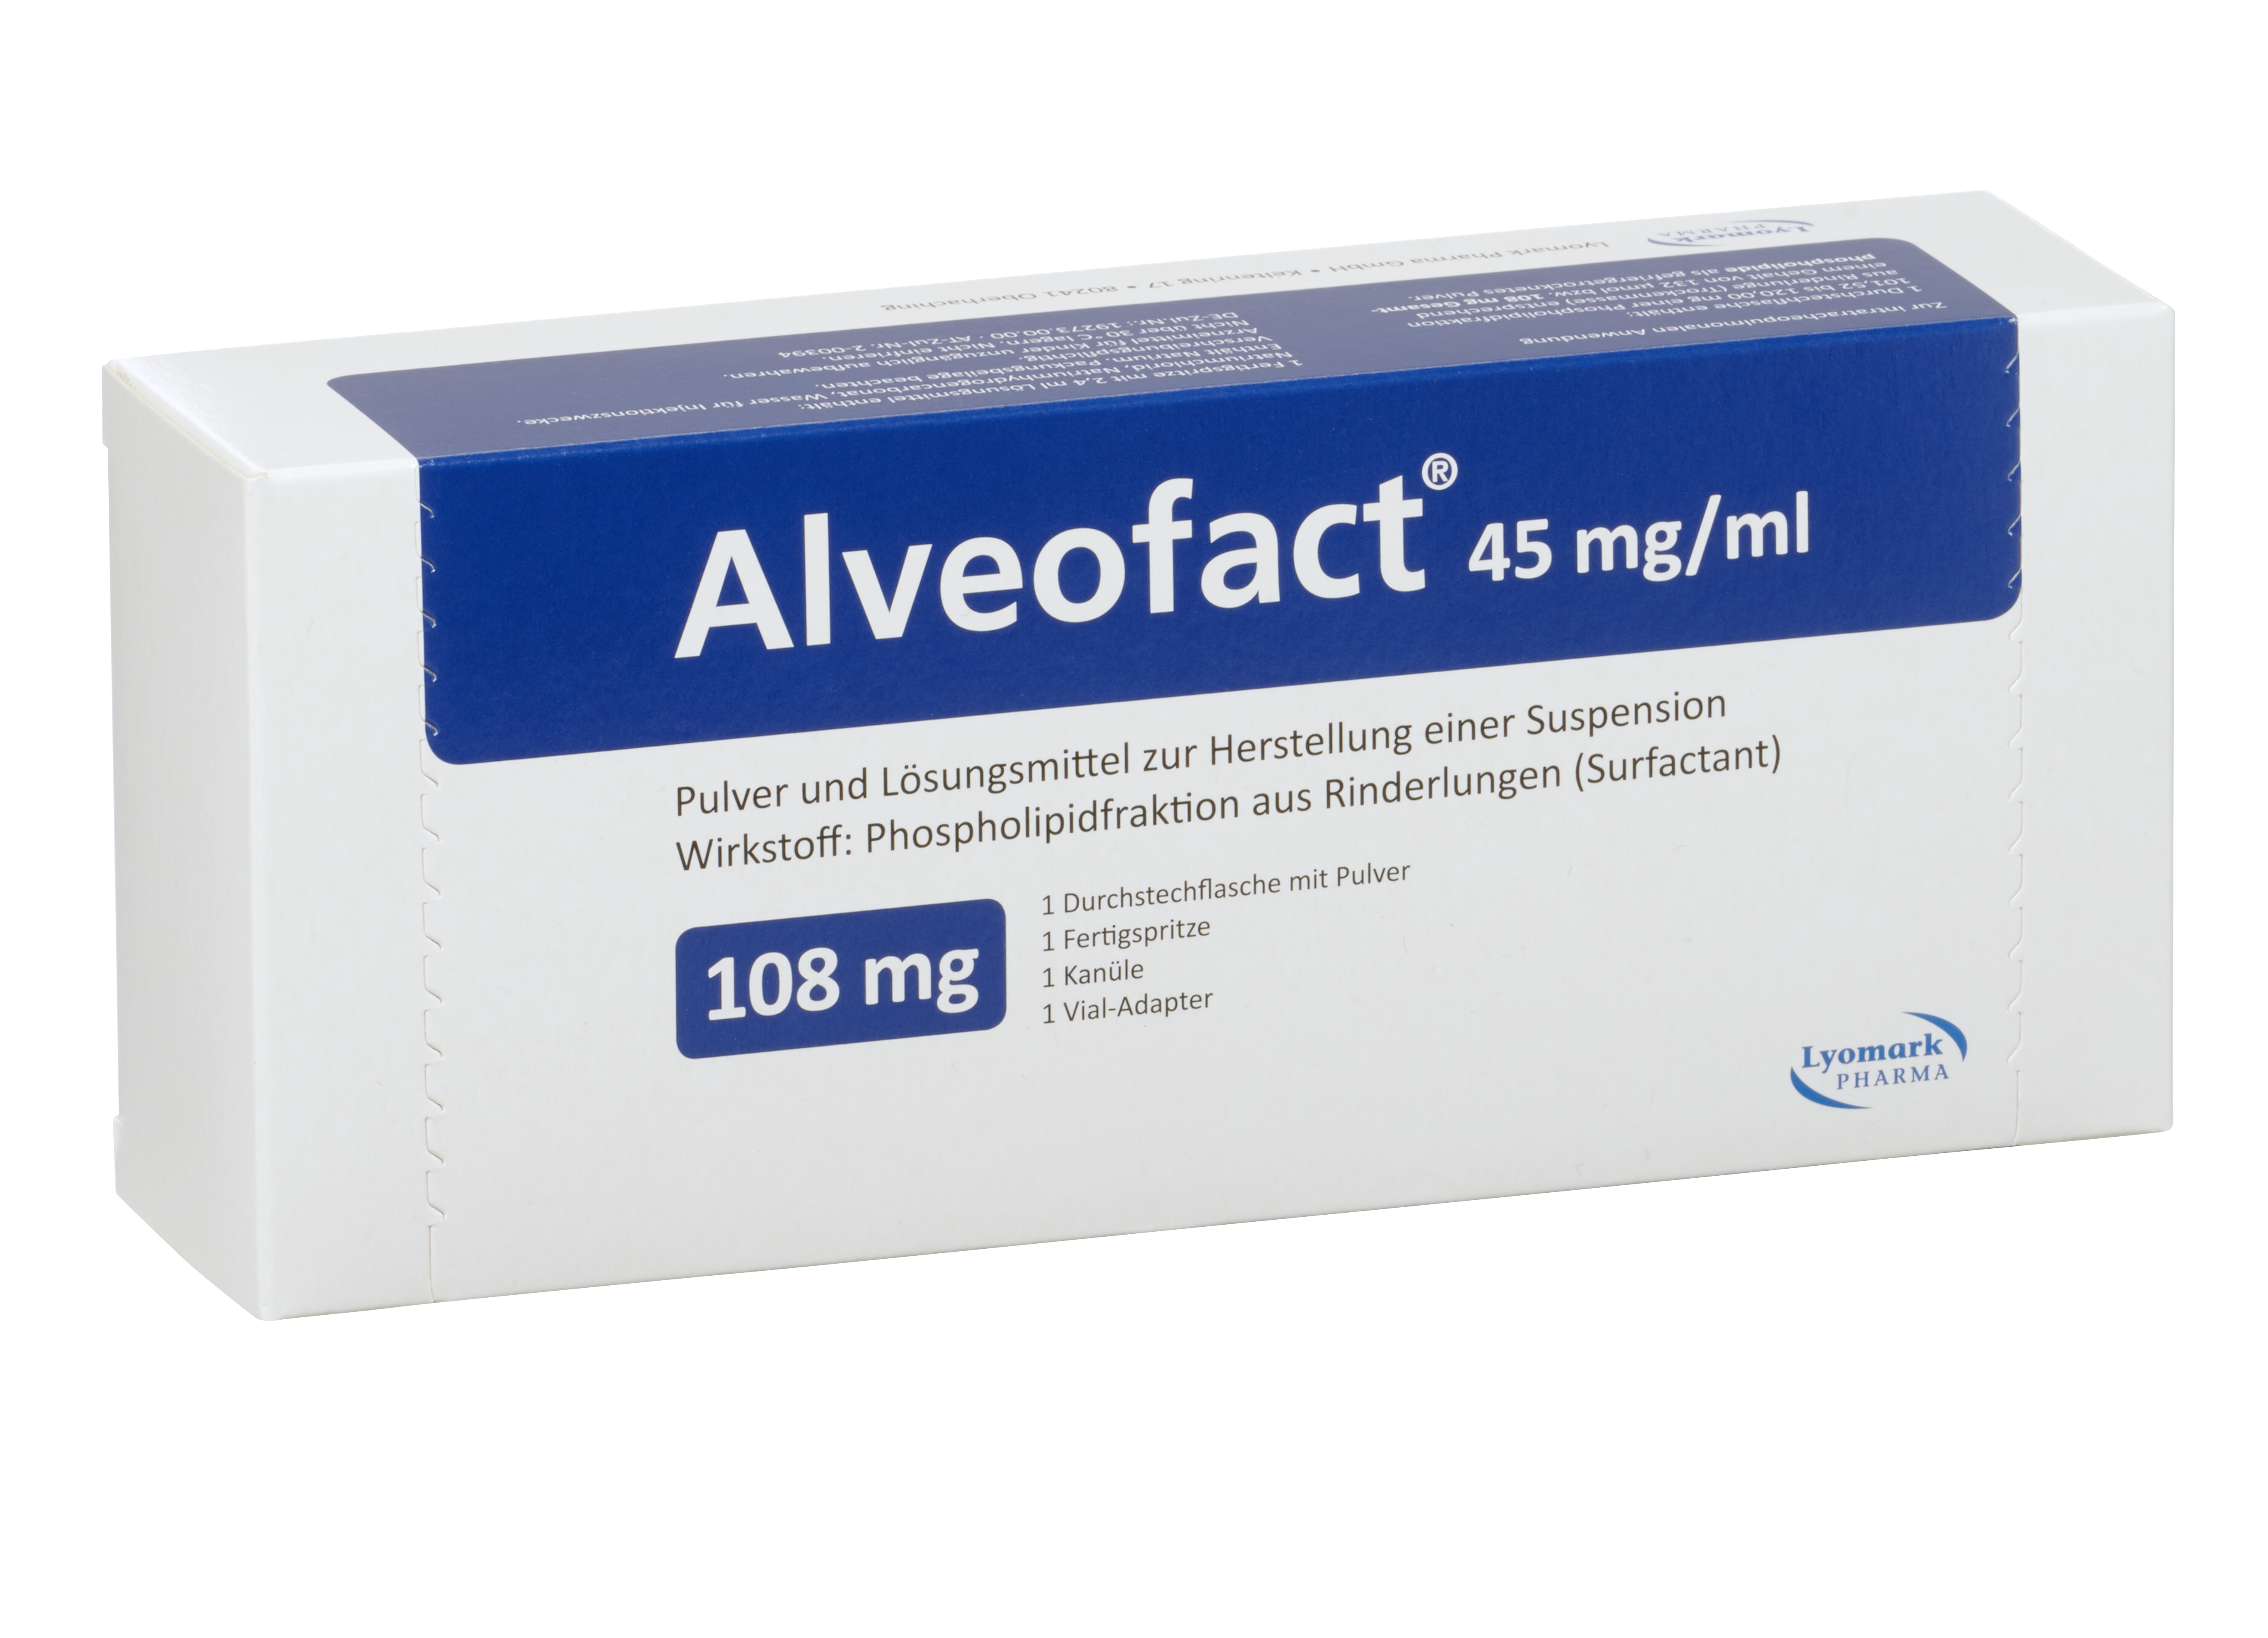 Alveofact® - Natural bovine lung surfactant